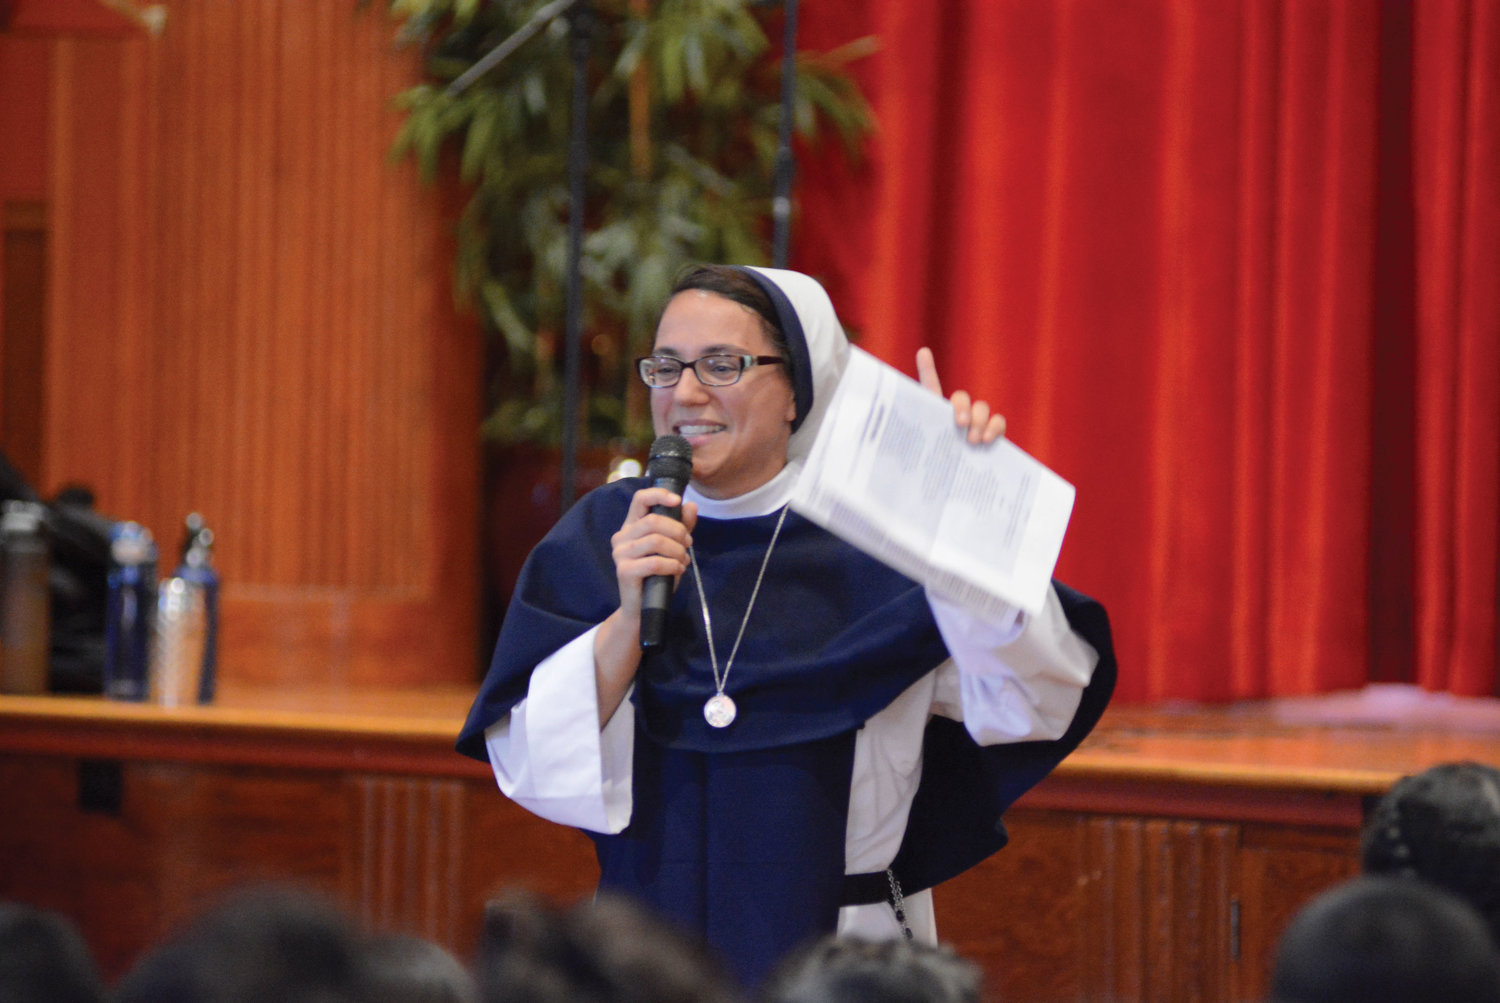 Sister Gianna Maria, S.V., tells her vocation story as a rap.